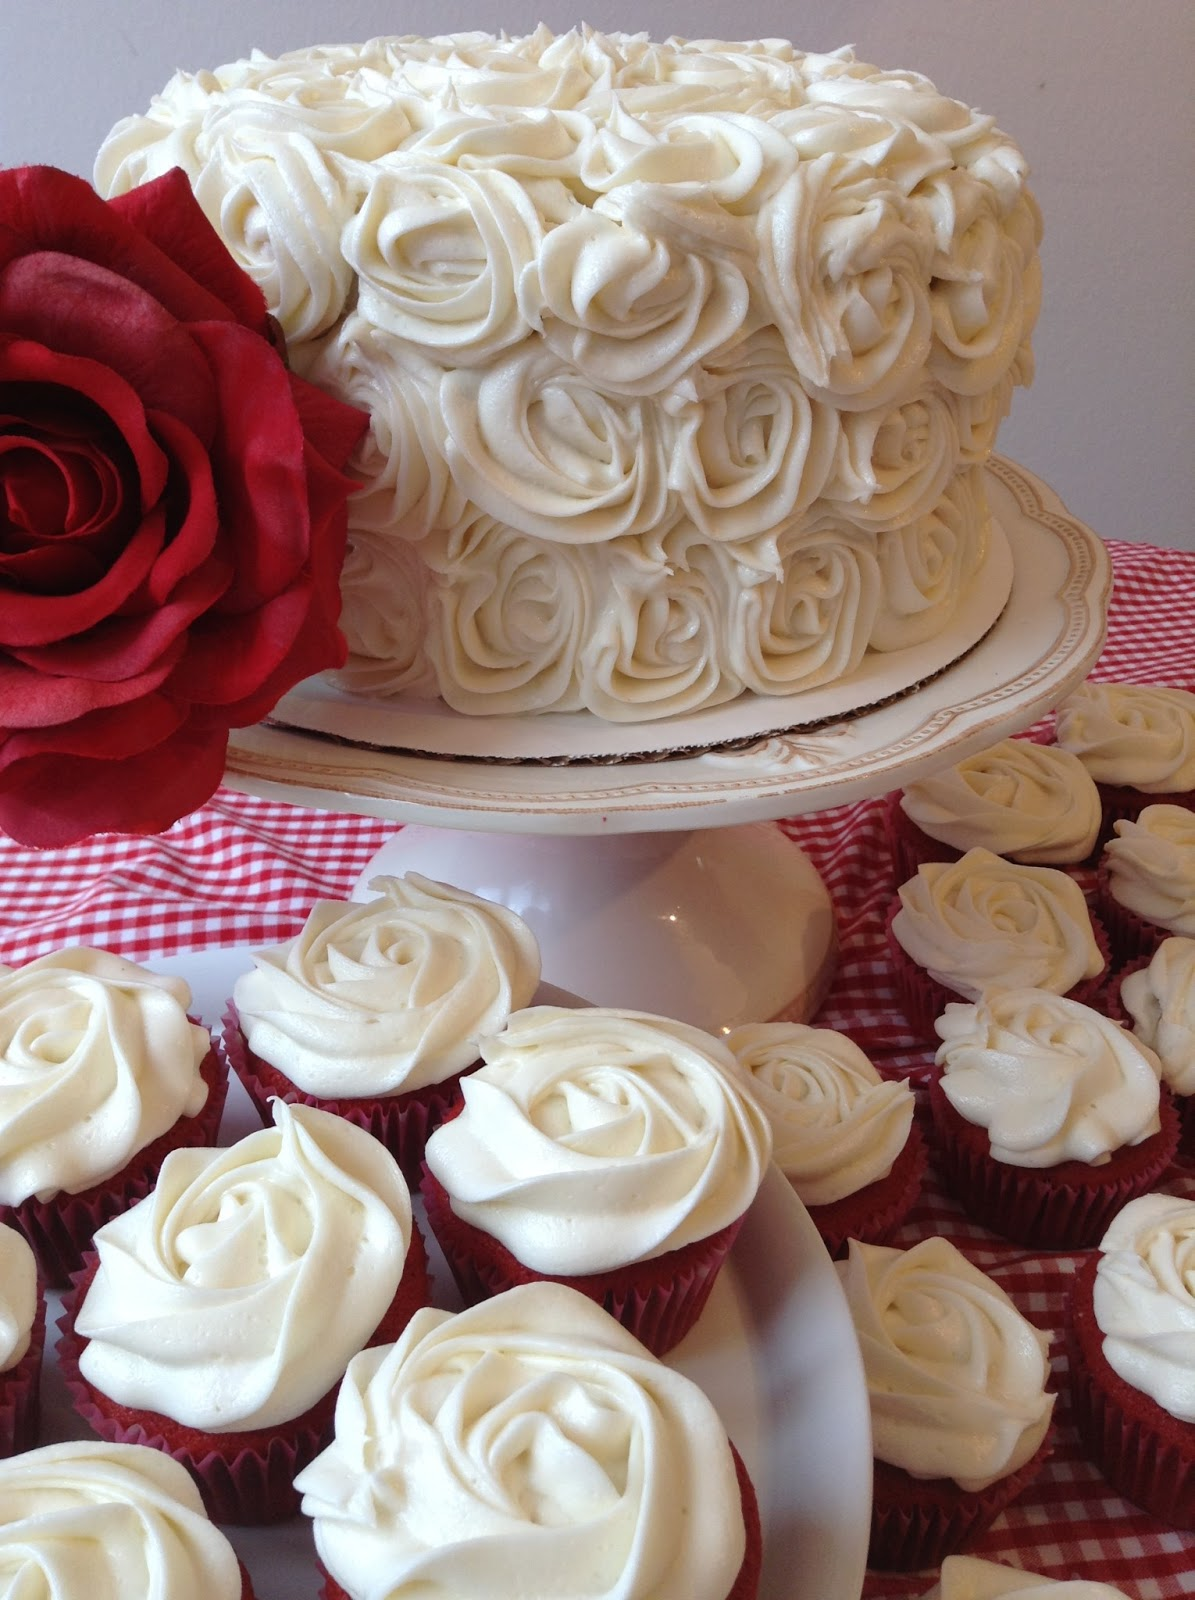 The Sugary Shrink: Red Velvet Cake and Cupcakes